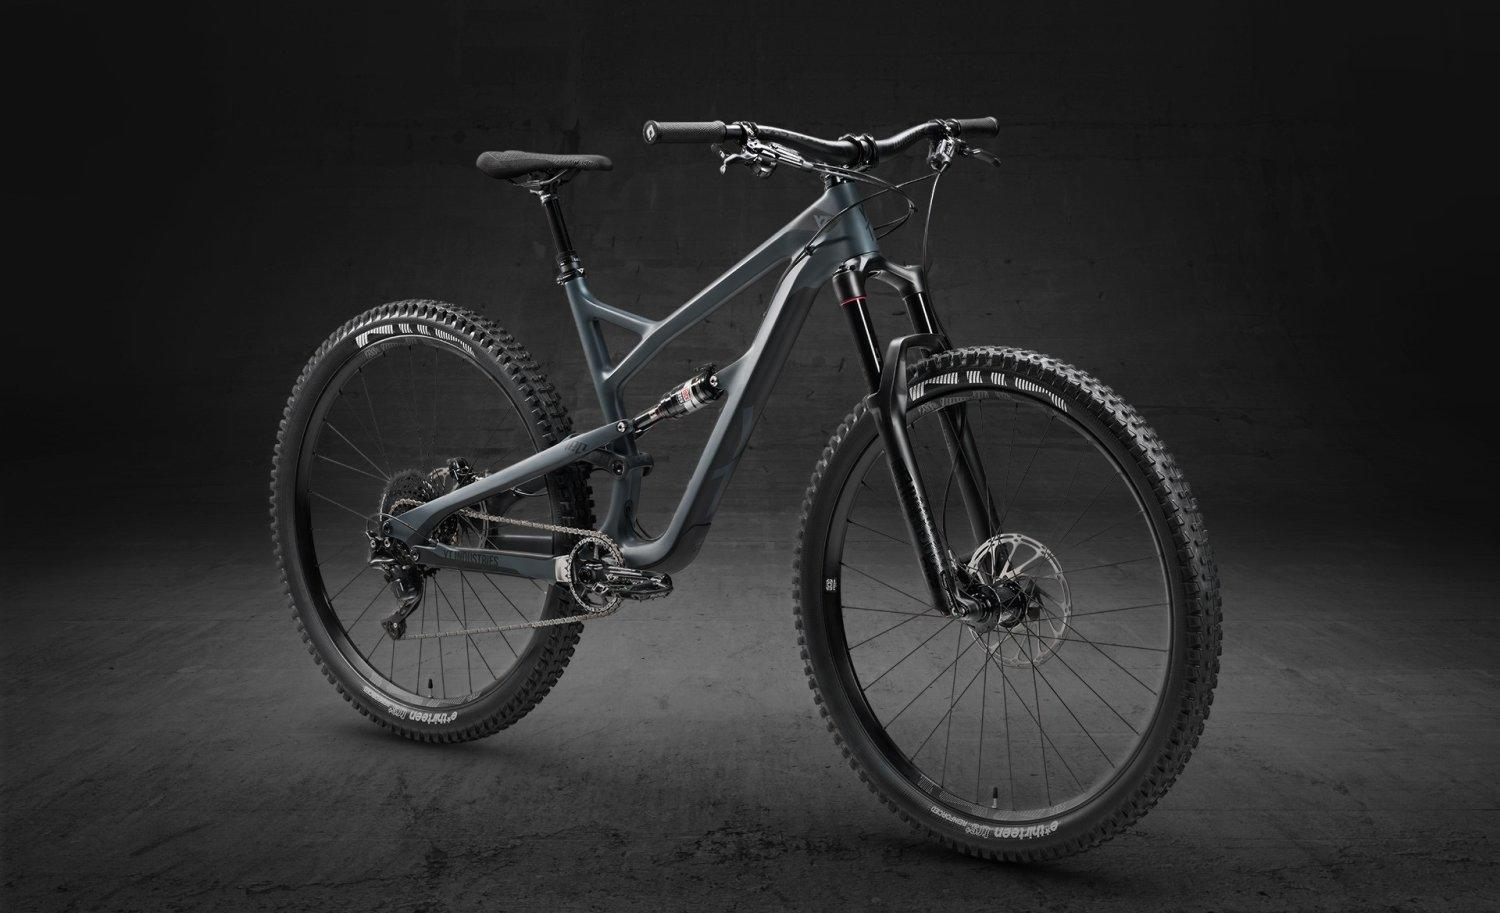 YT JEFFSY 29 CF - STORM GREY/BLACK MAGIC (2018 MODEL)